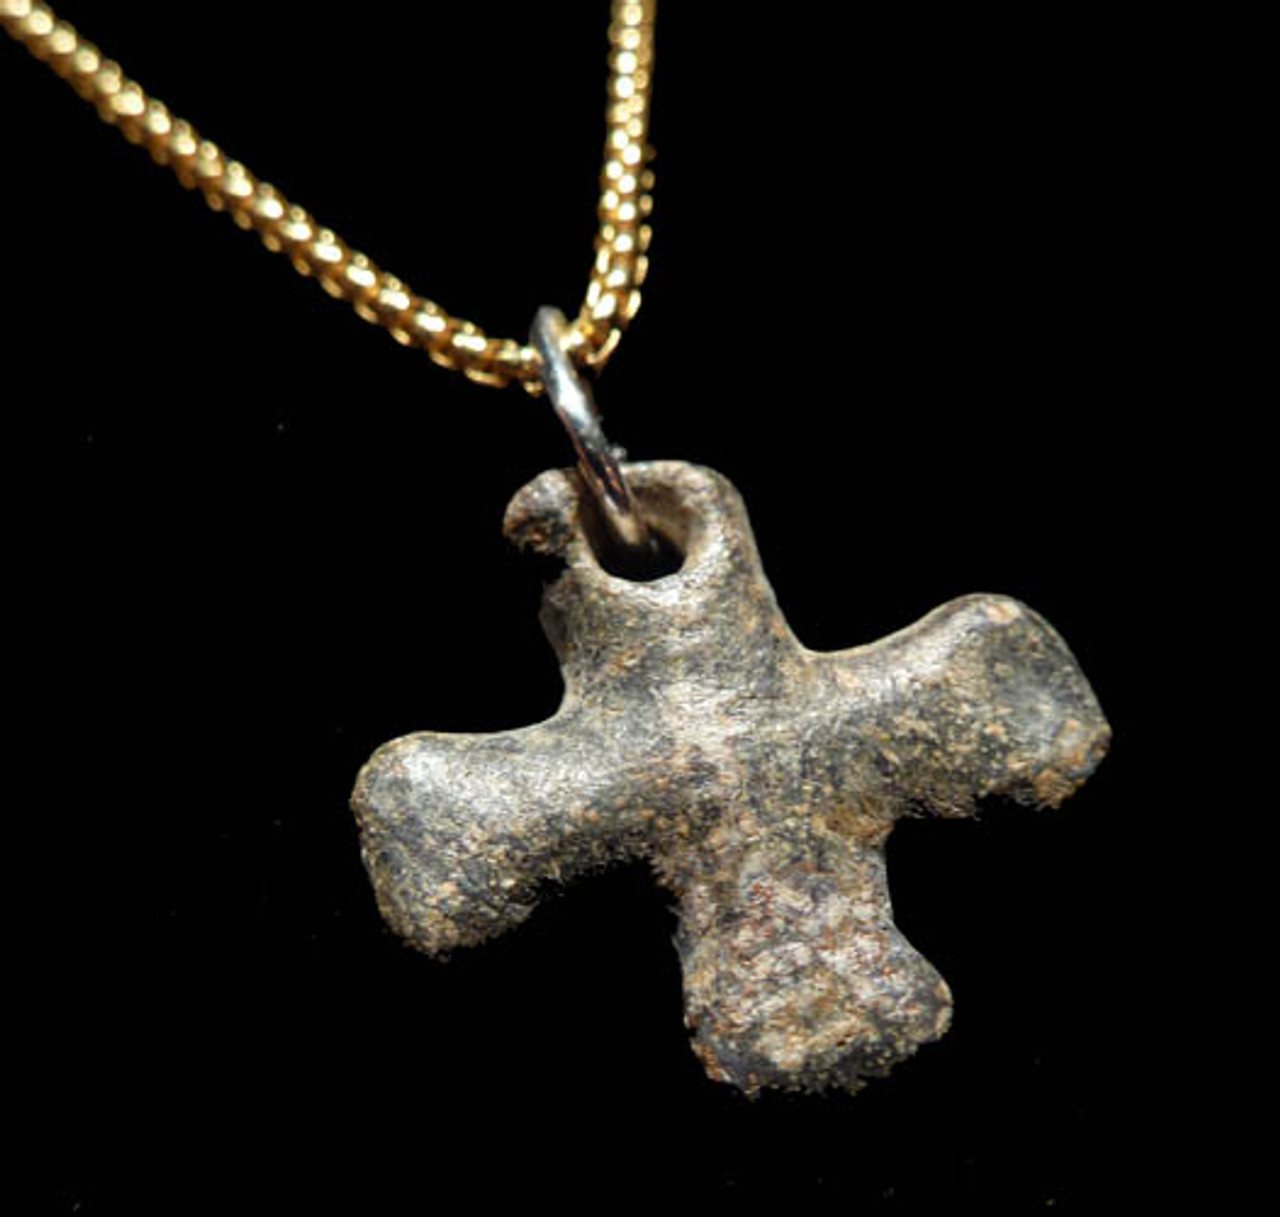 CJ016 - ANCIENT CHRISTIAN LEAD CROSS PENDANT FROM THE ROMAN BYZANTINE EMPIRE